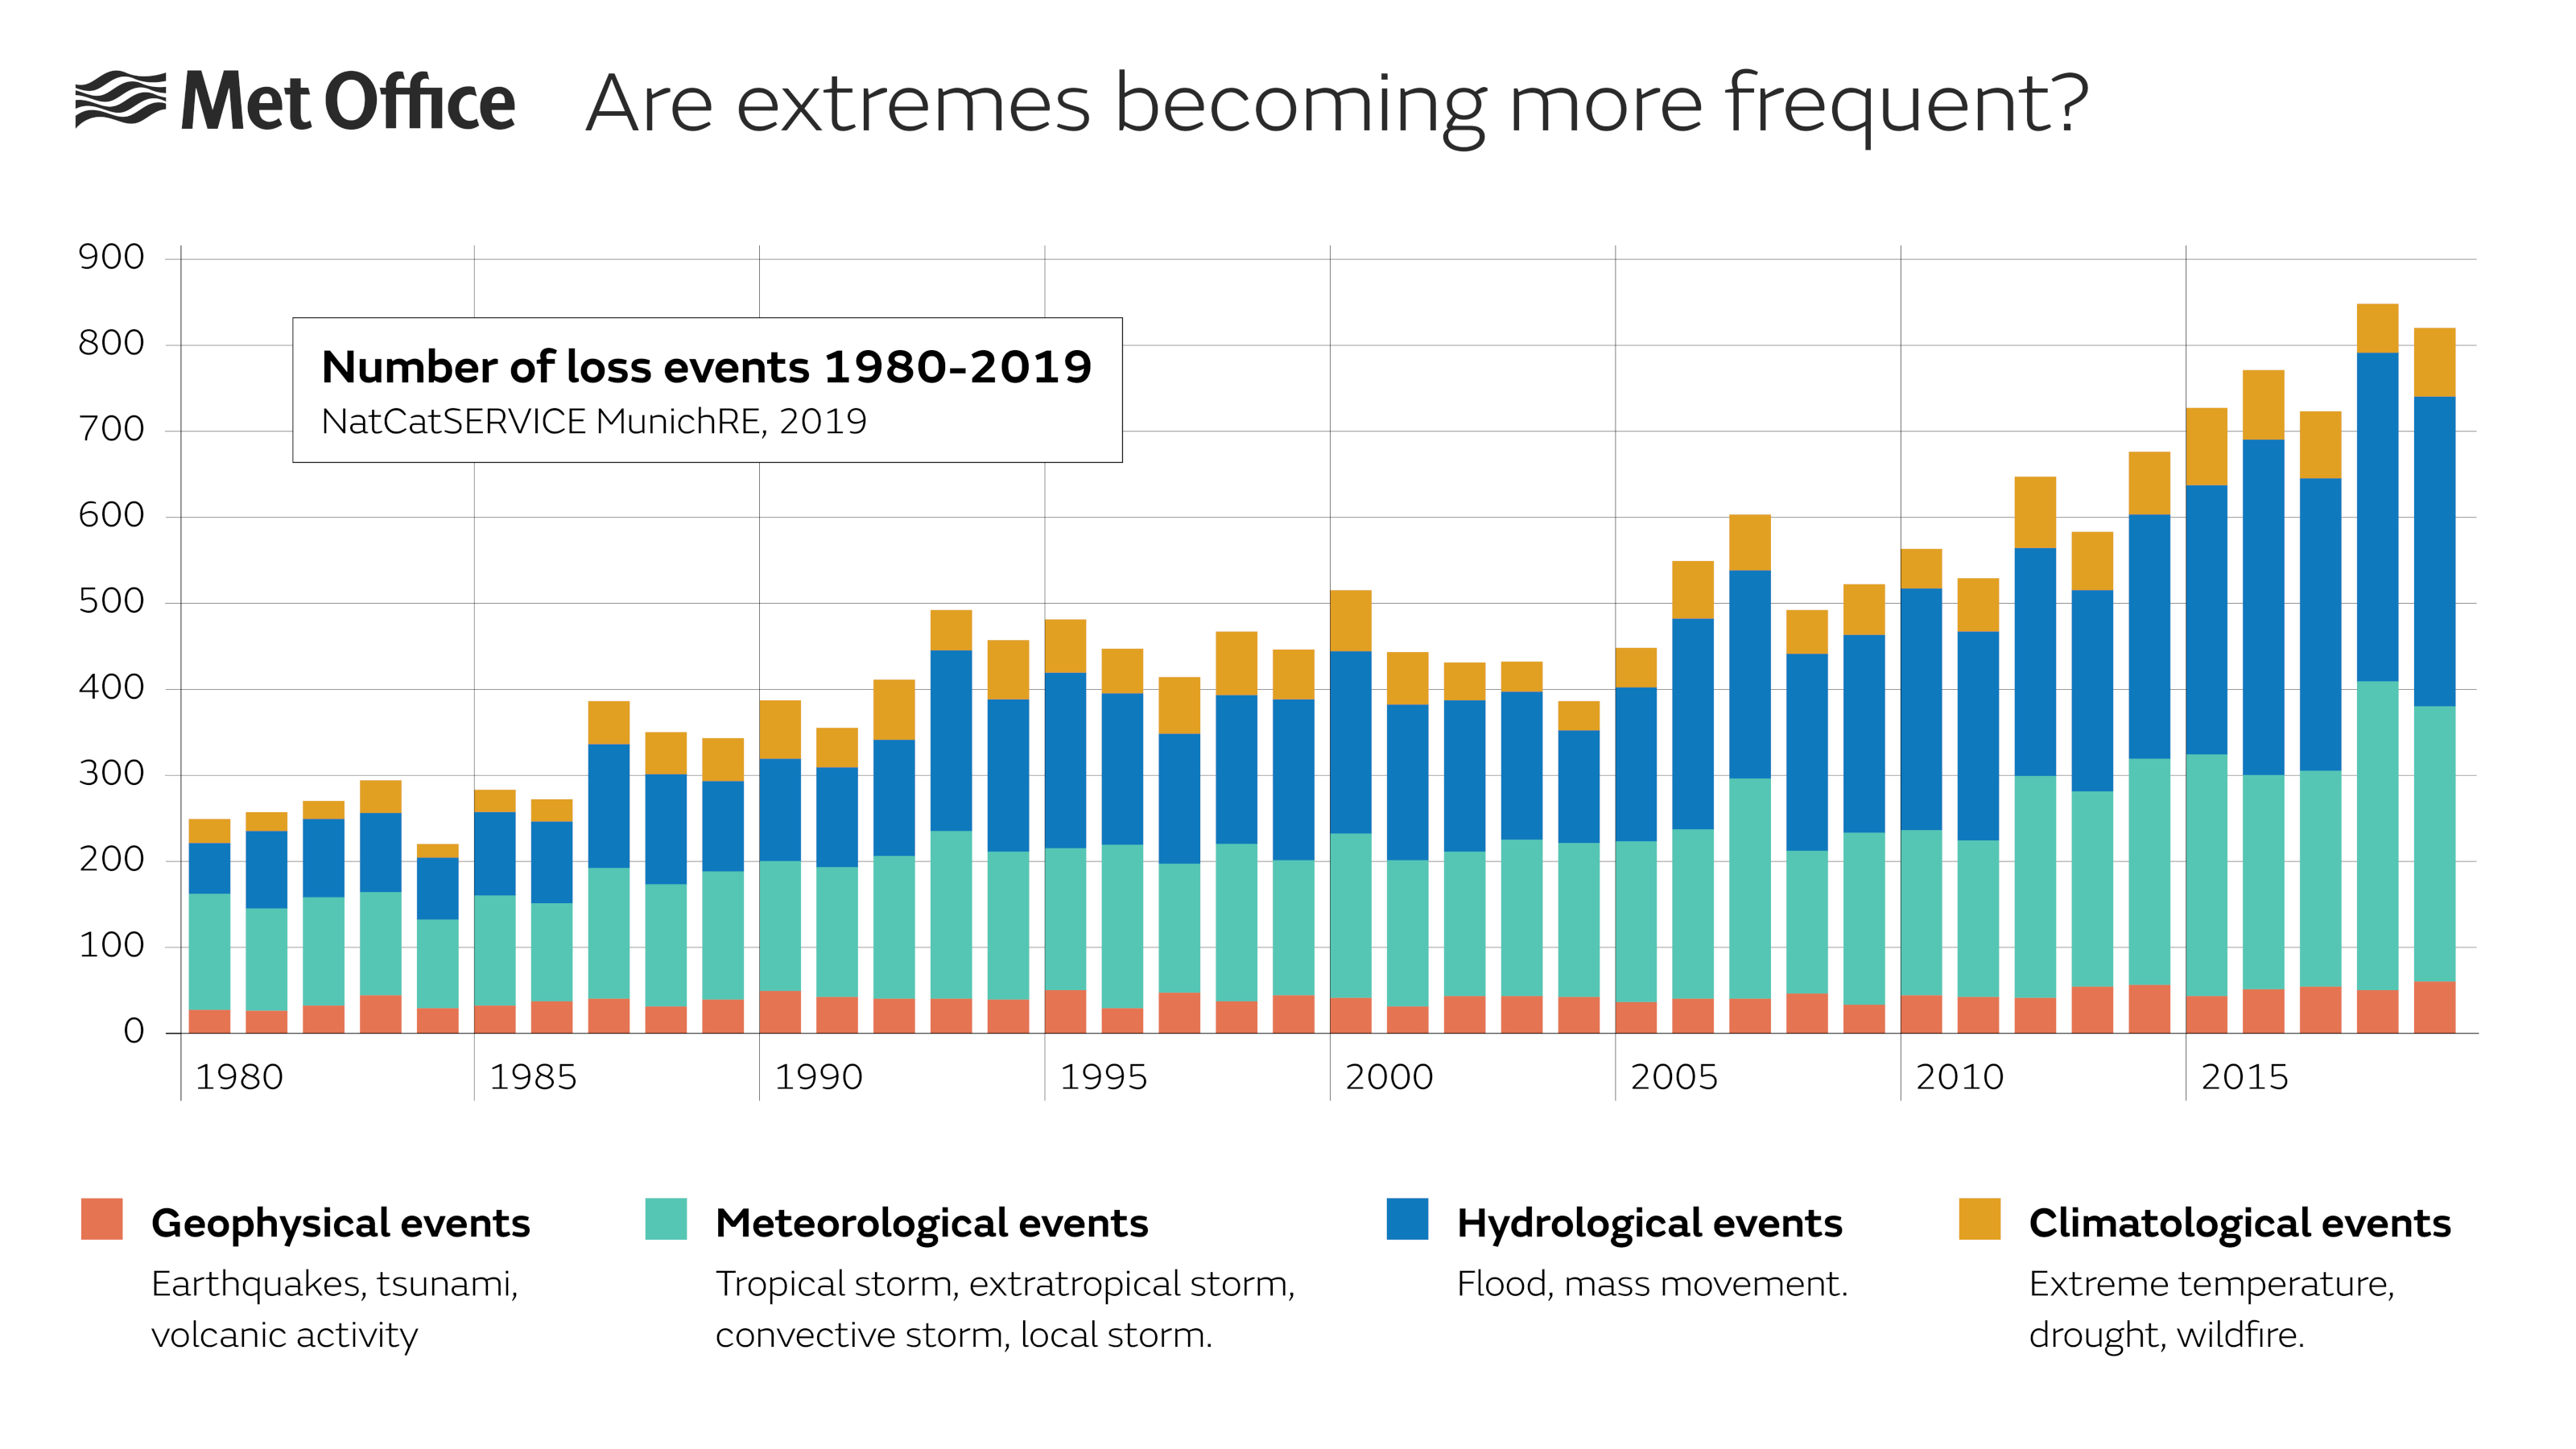 Bar chart showing the increase in events that cause loss, between 1980 and 2019. Meteorological, hydrological and climatological events all increase over the period. Approximately 250 events were recorded in 1980, with just over 800 in 2019.